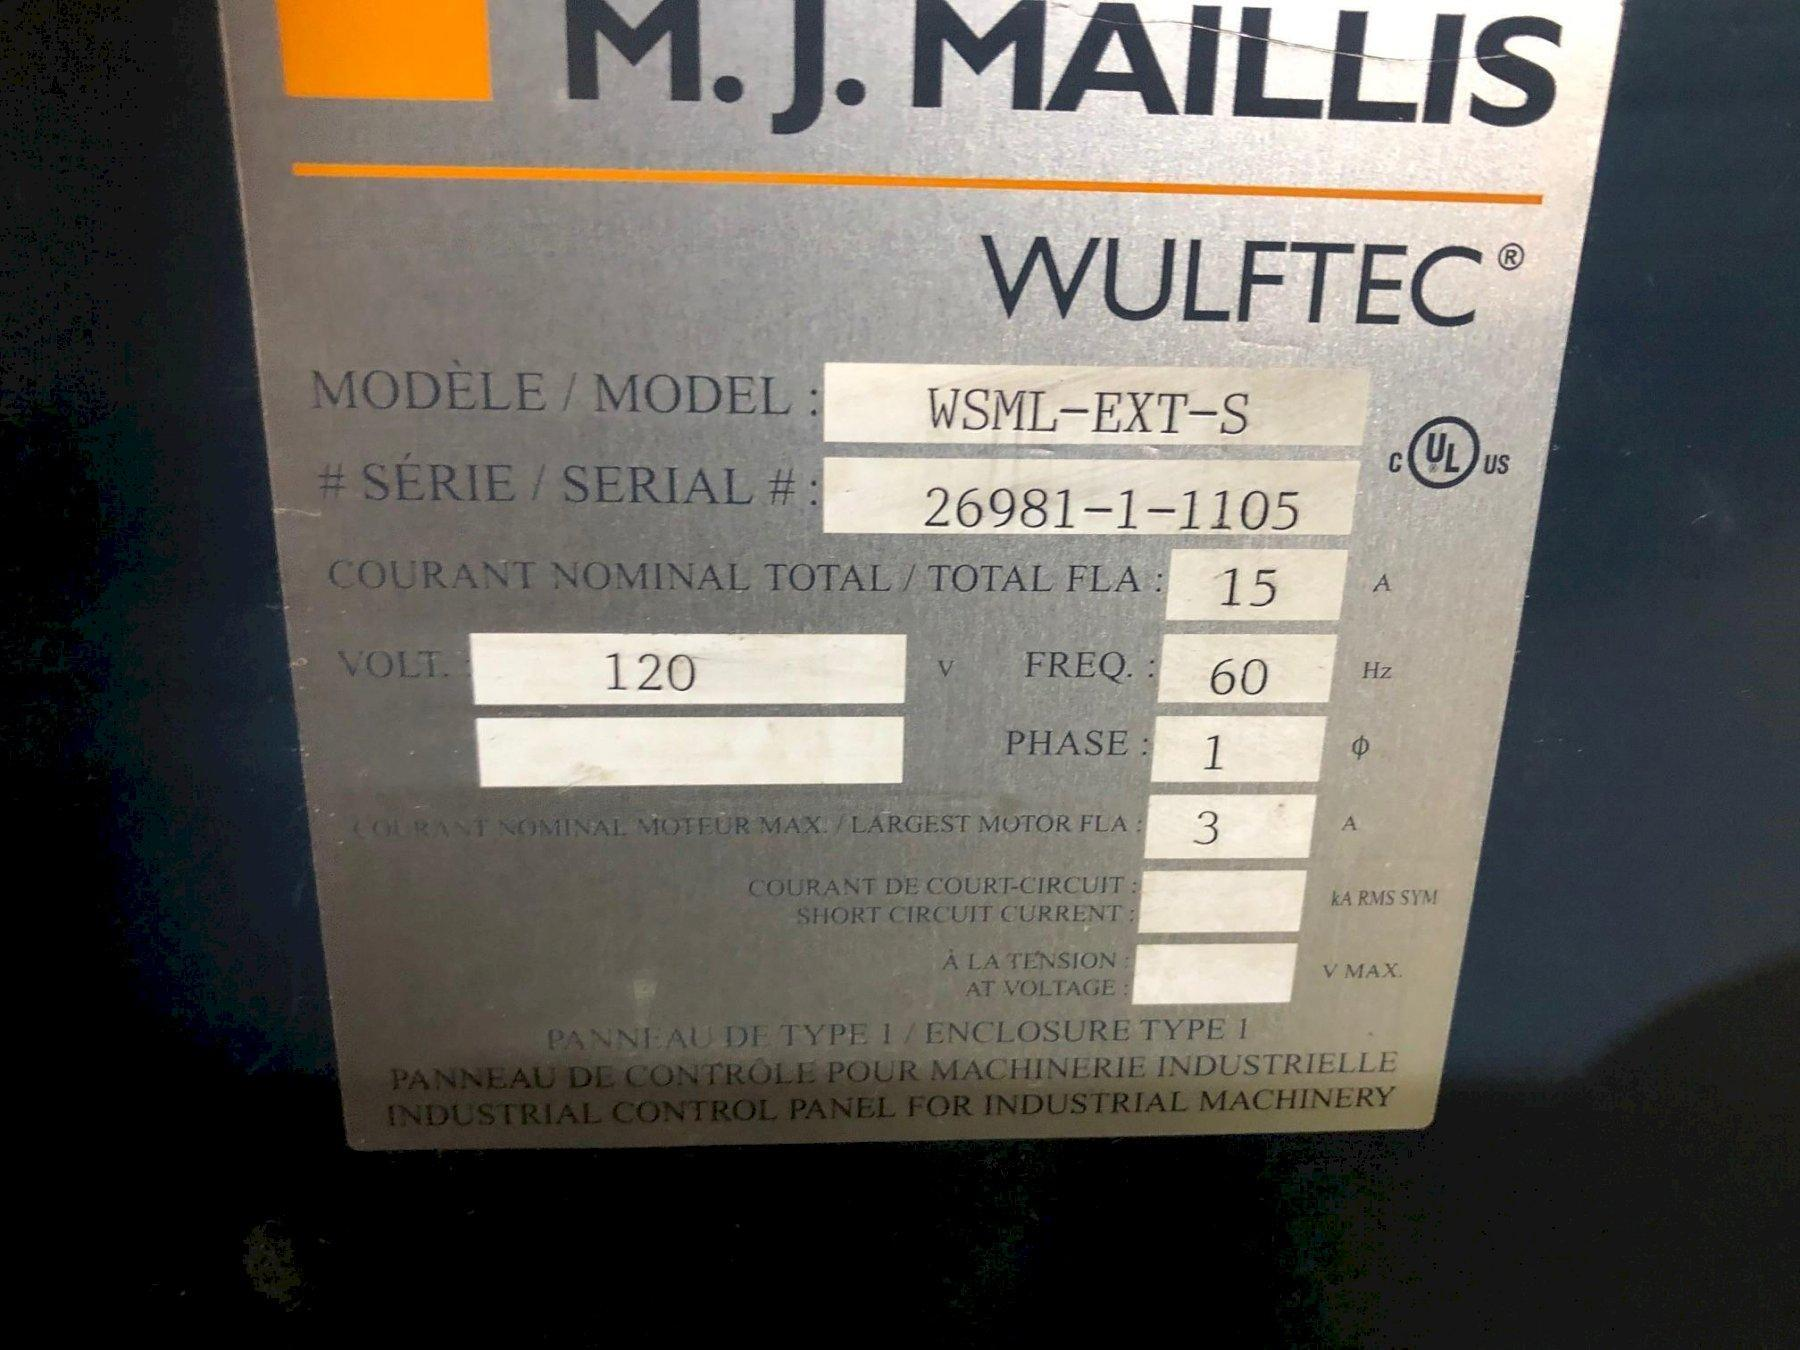 WULFTEC SEMI AUTO STRETCH WRAPPING MACHINE